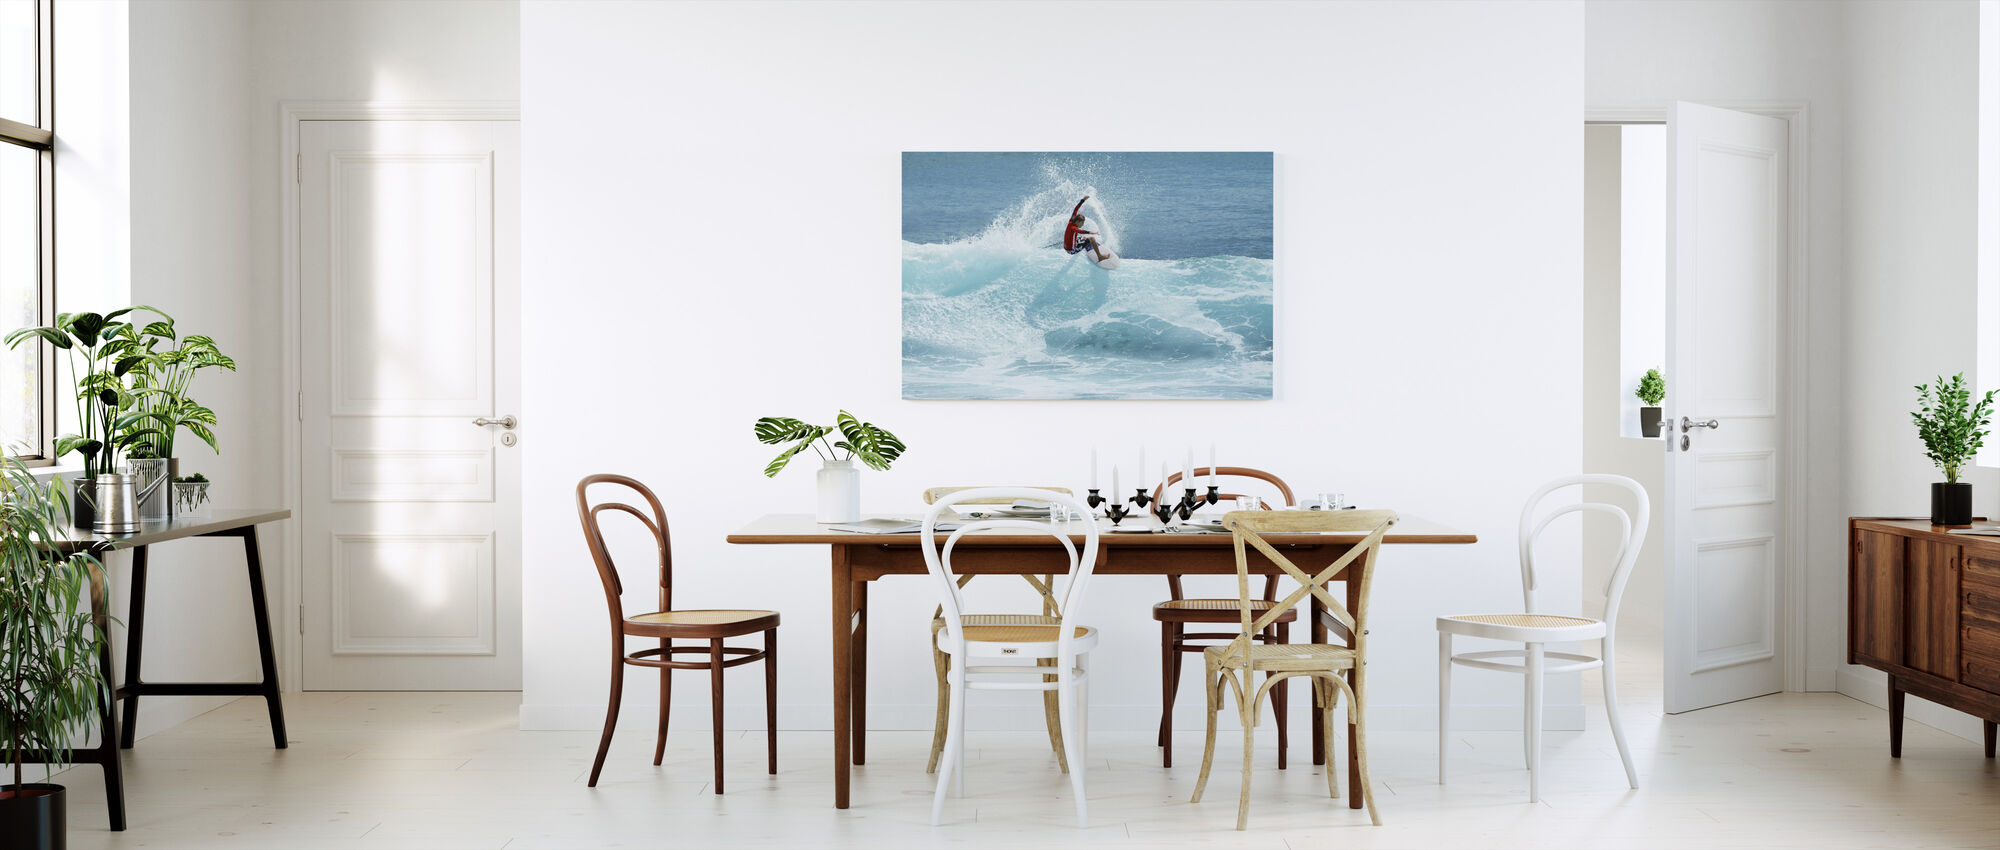 Surfer Carving Top of Wave - Canvas print - Kitchen